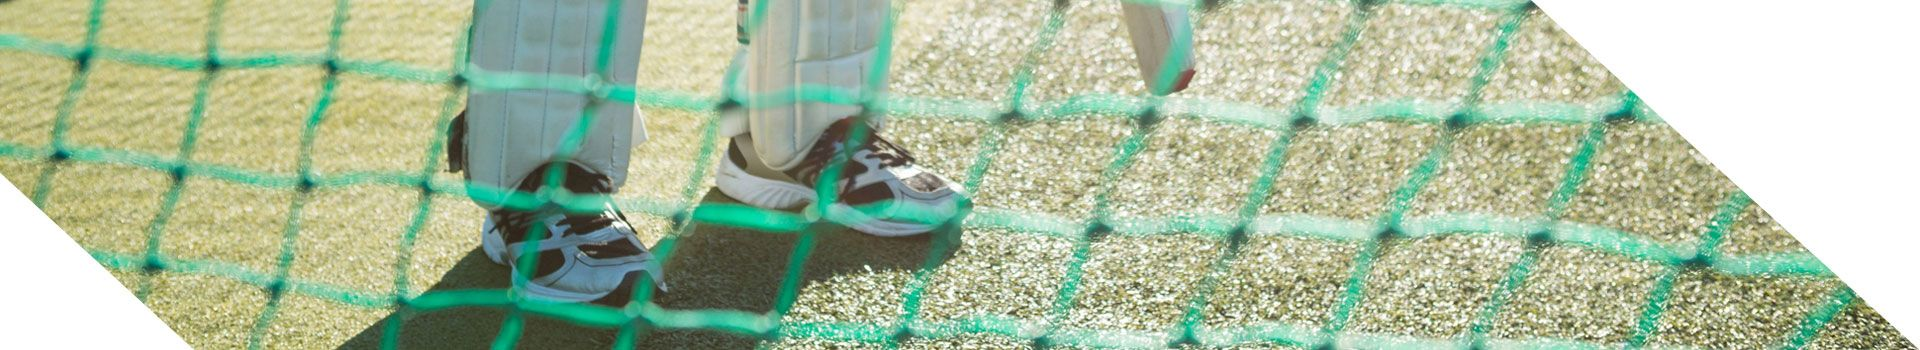 homeuse- cricket systems and multi-sport courts cricket practice nets - cricket nets for sale - cricket net price - cricket nets south africa